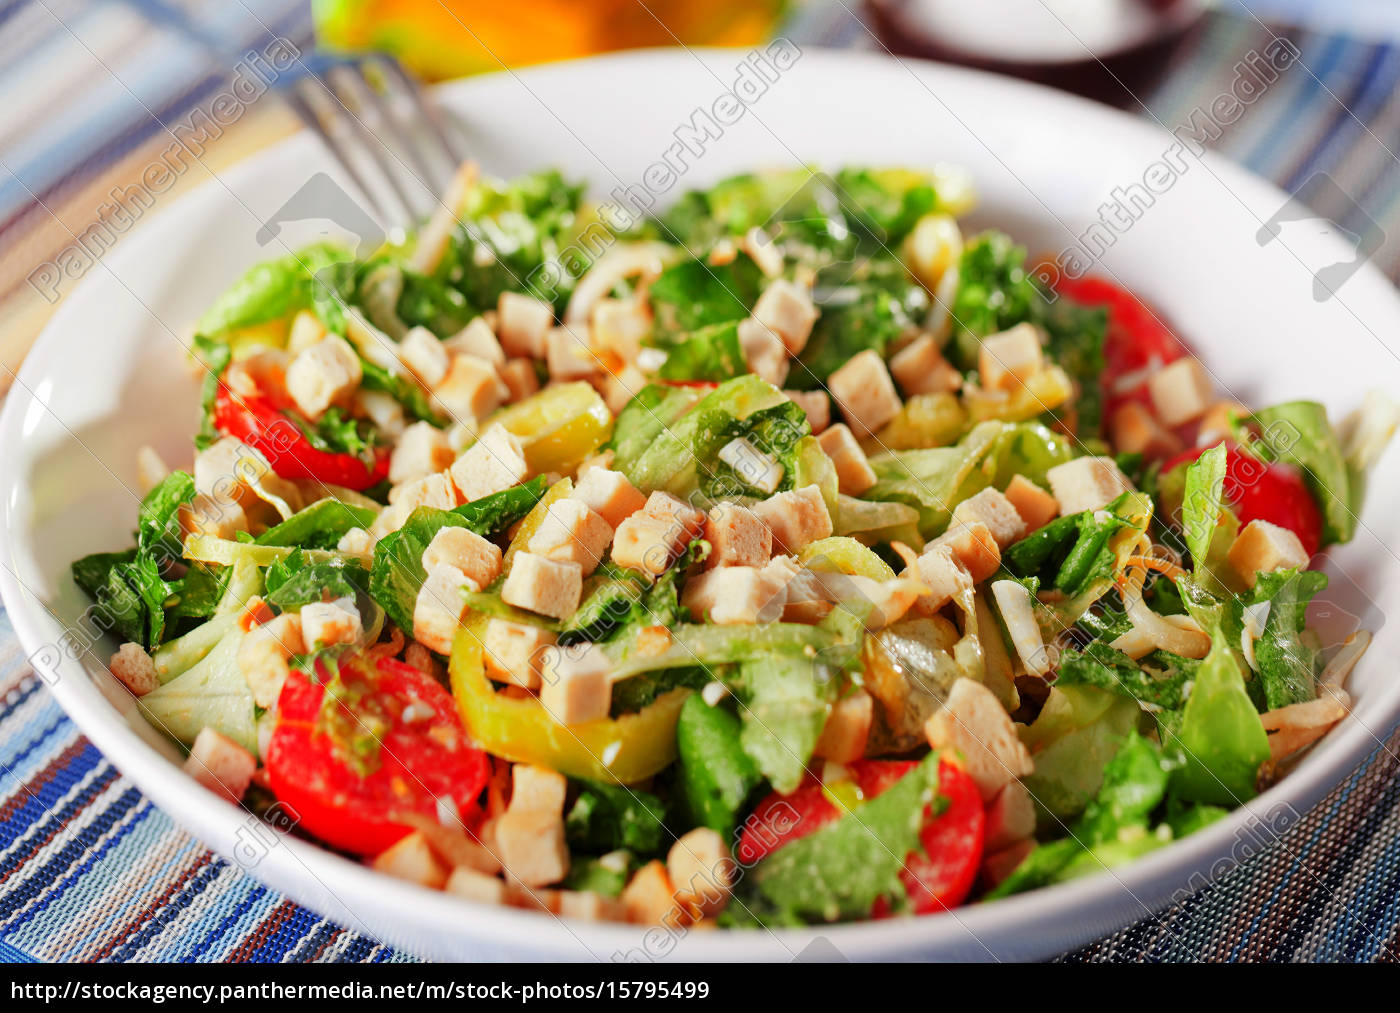 green, salad, with, tomatos, and, croutons, green - 15795499